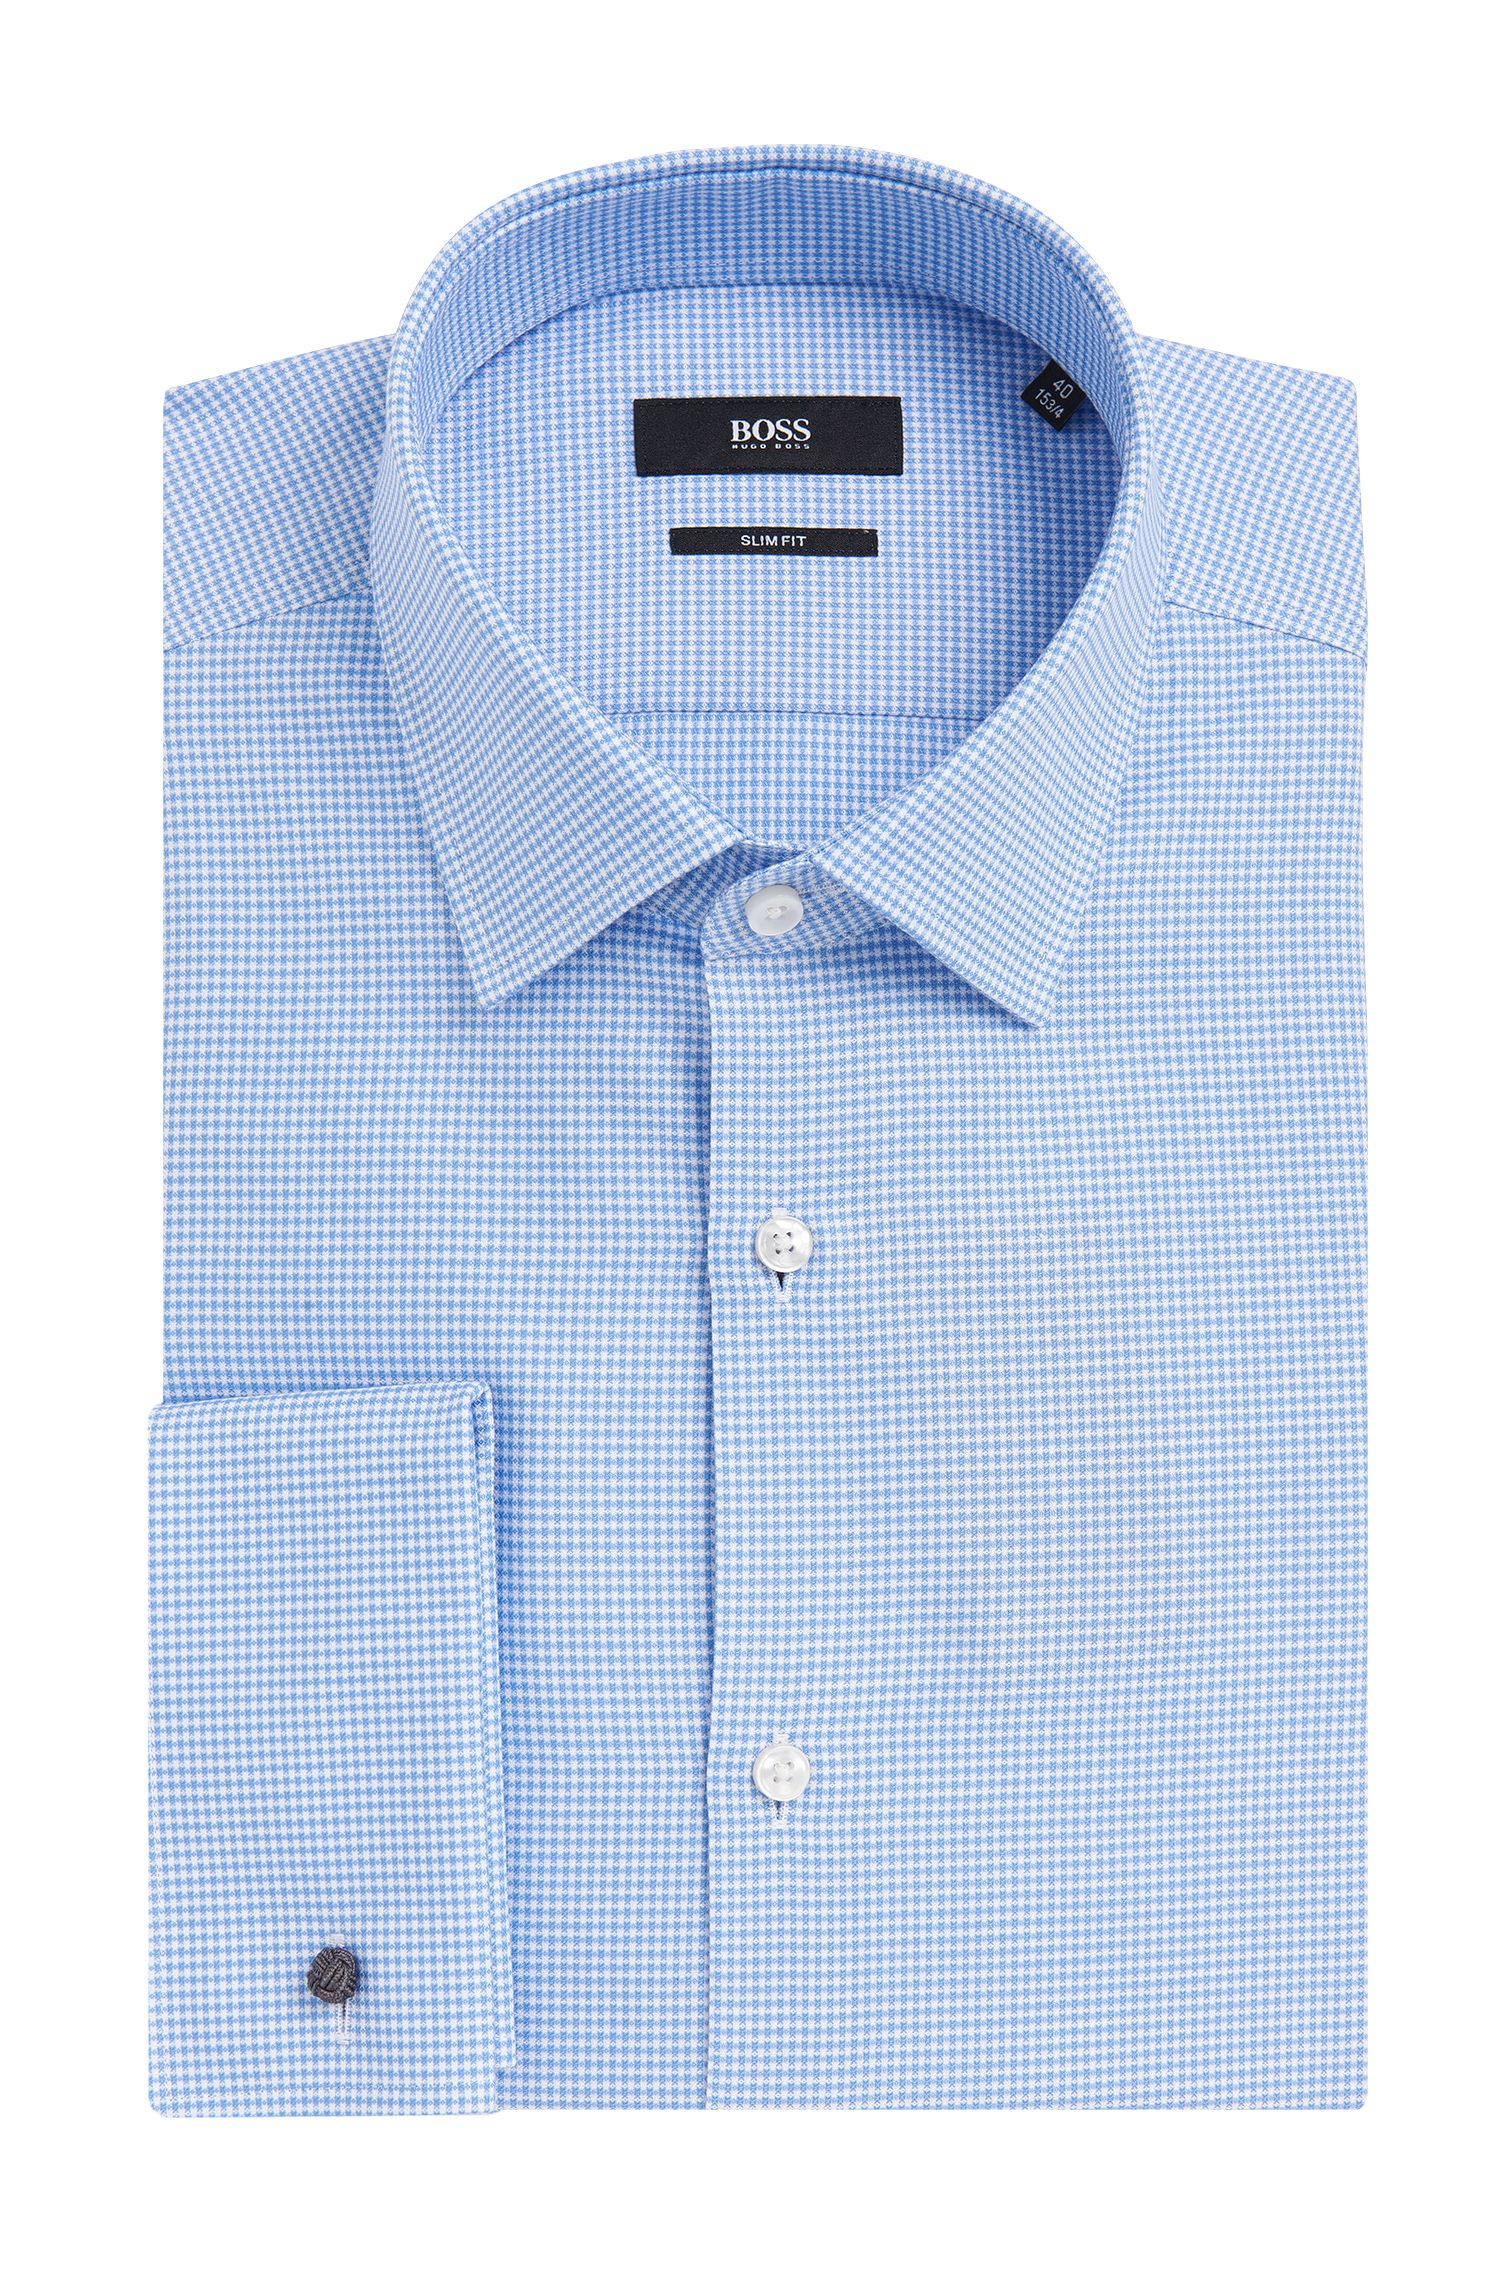 'Jacques' | Slim Fit, Italian Cotton French Cuff Dress Shirt